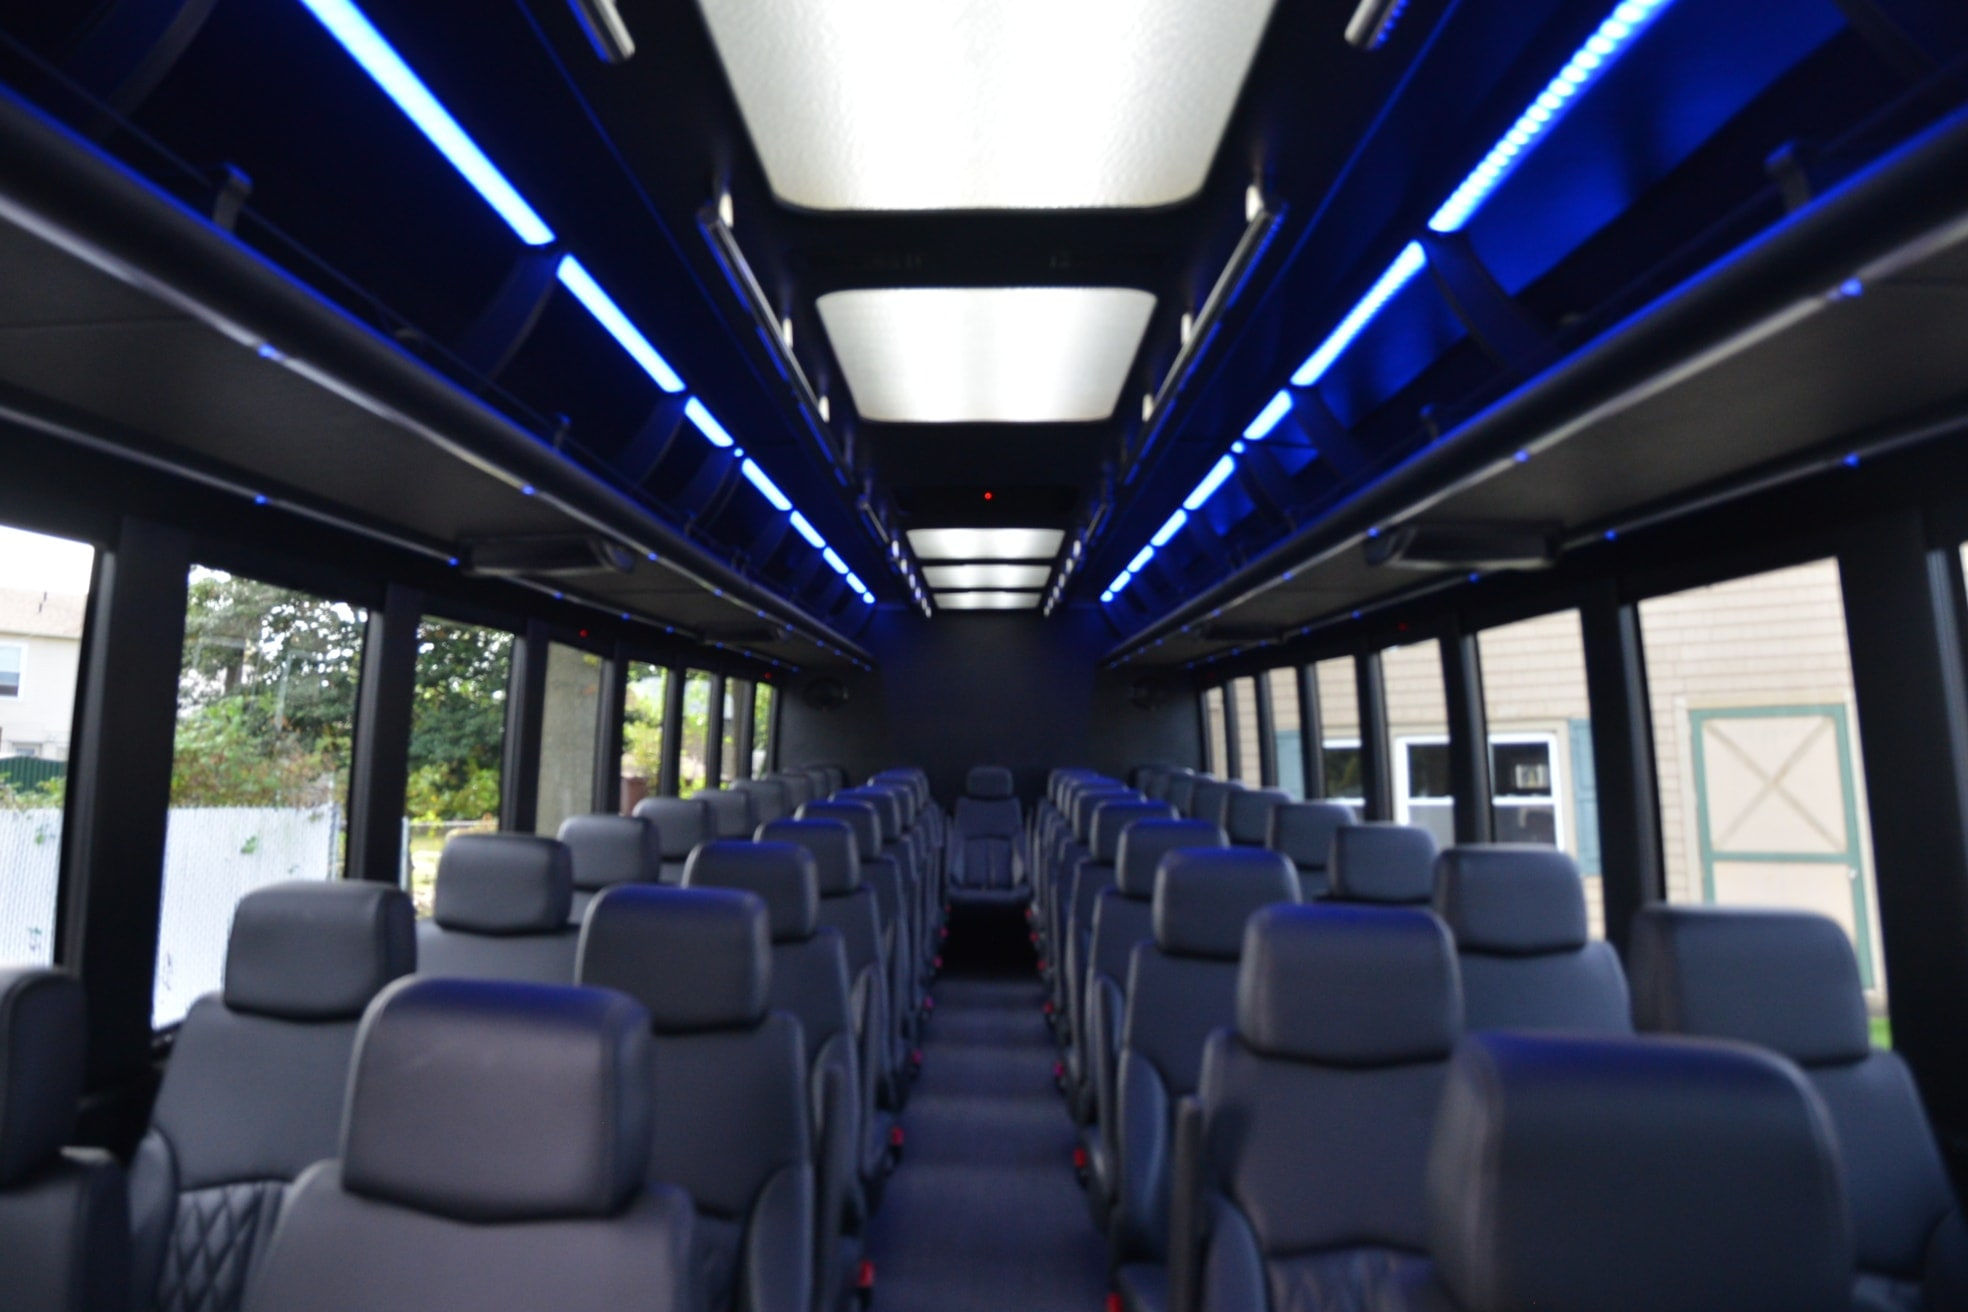 43 passengerexecutive party bus interior